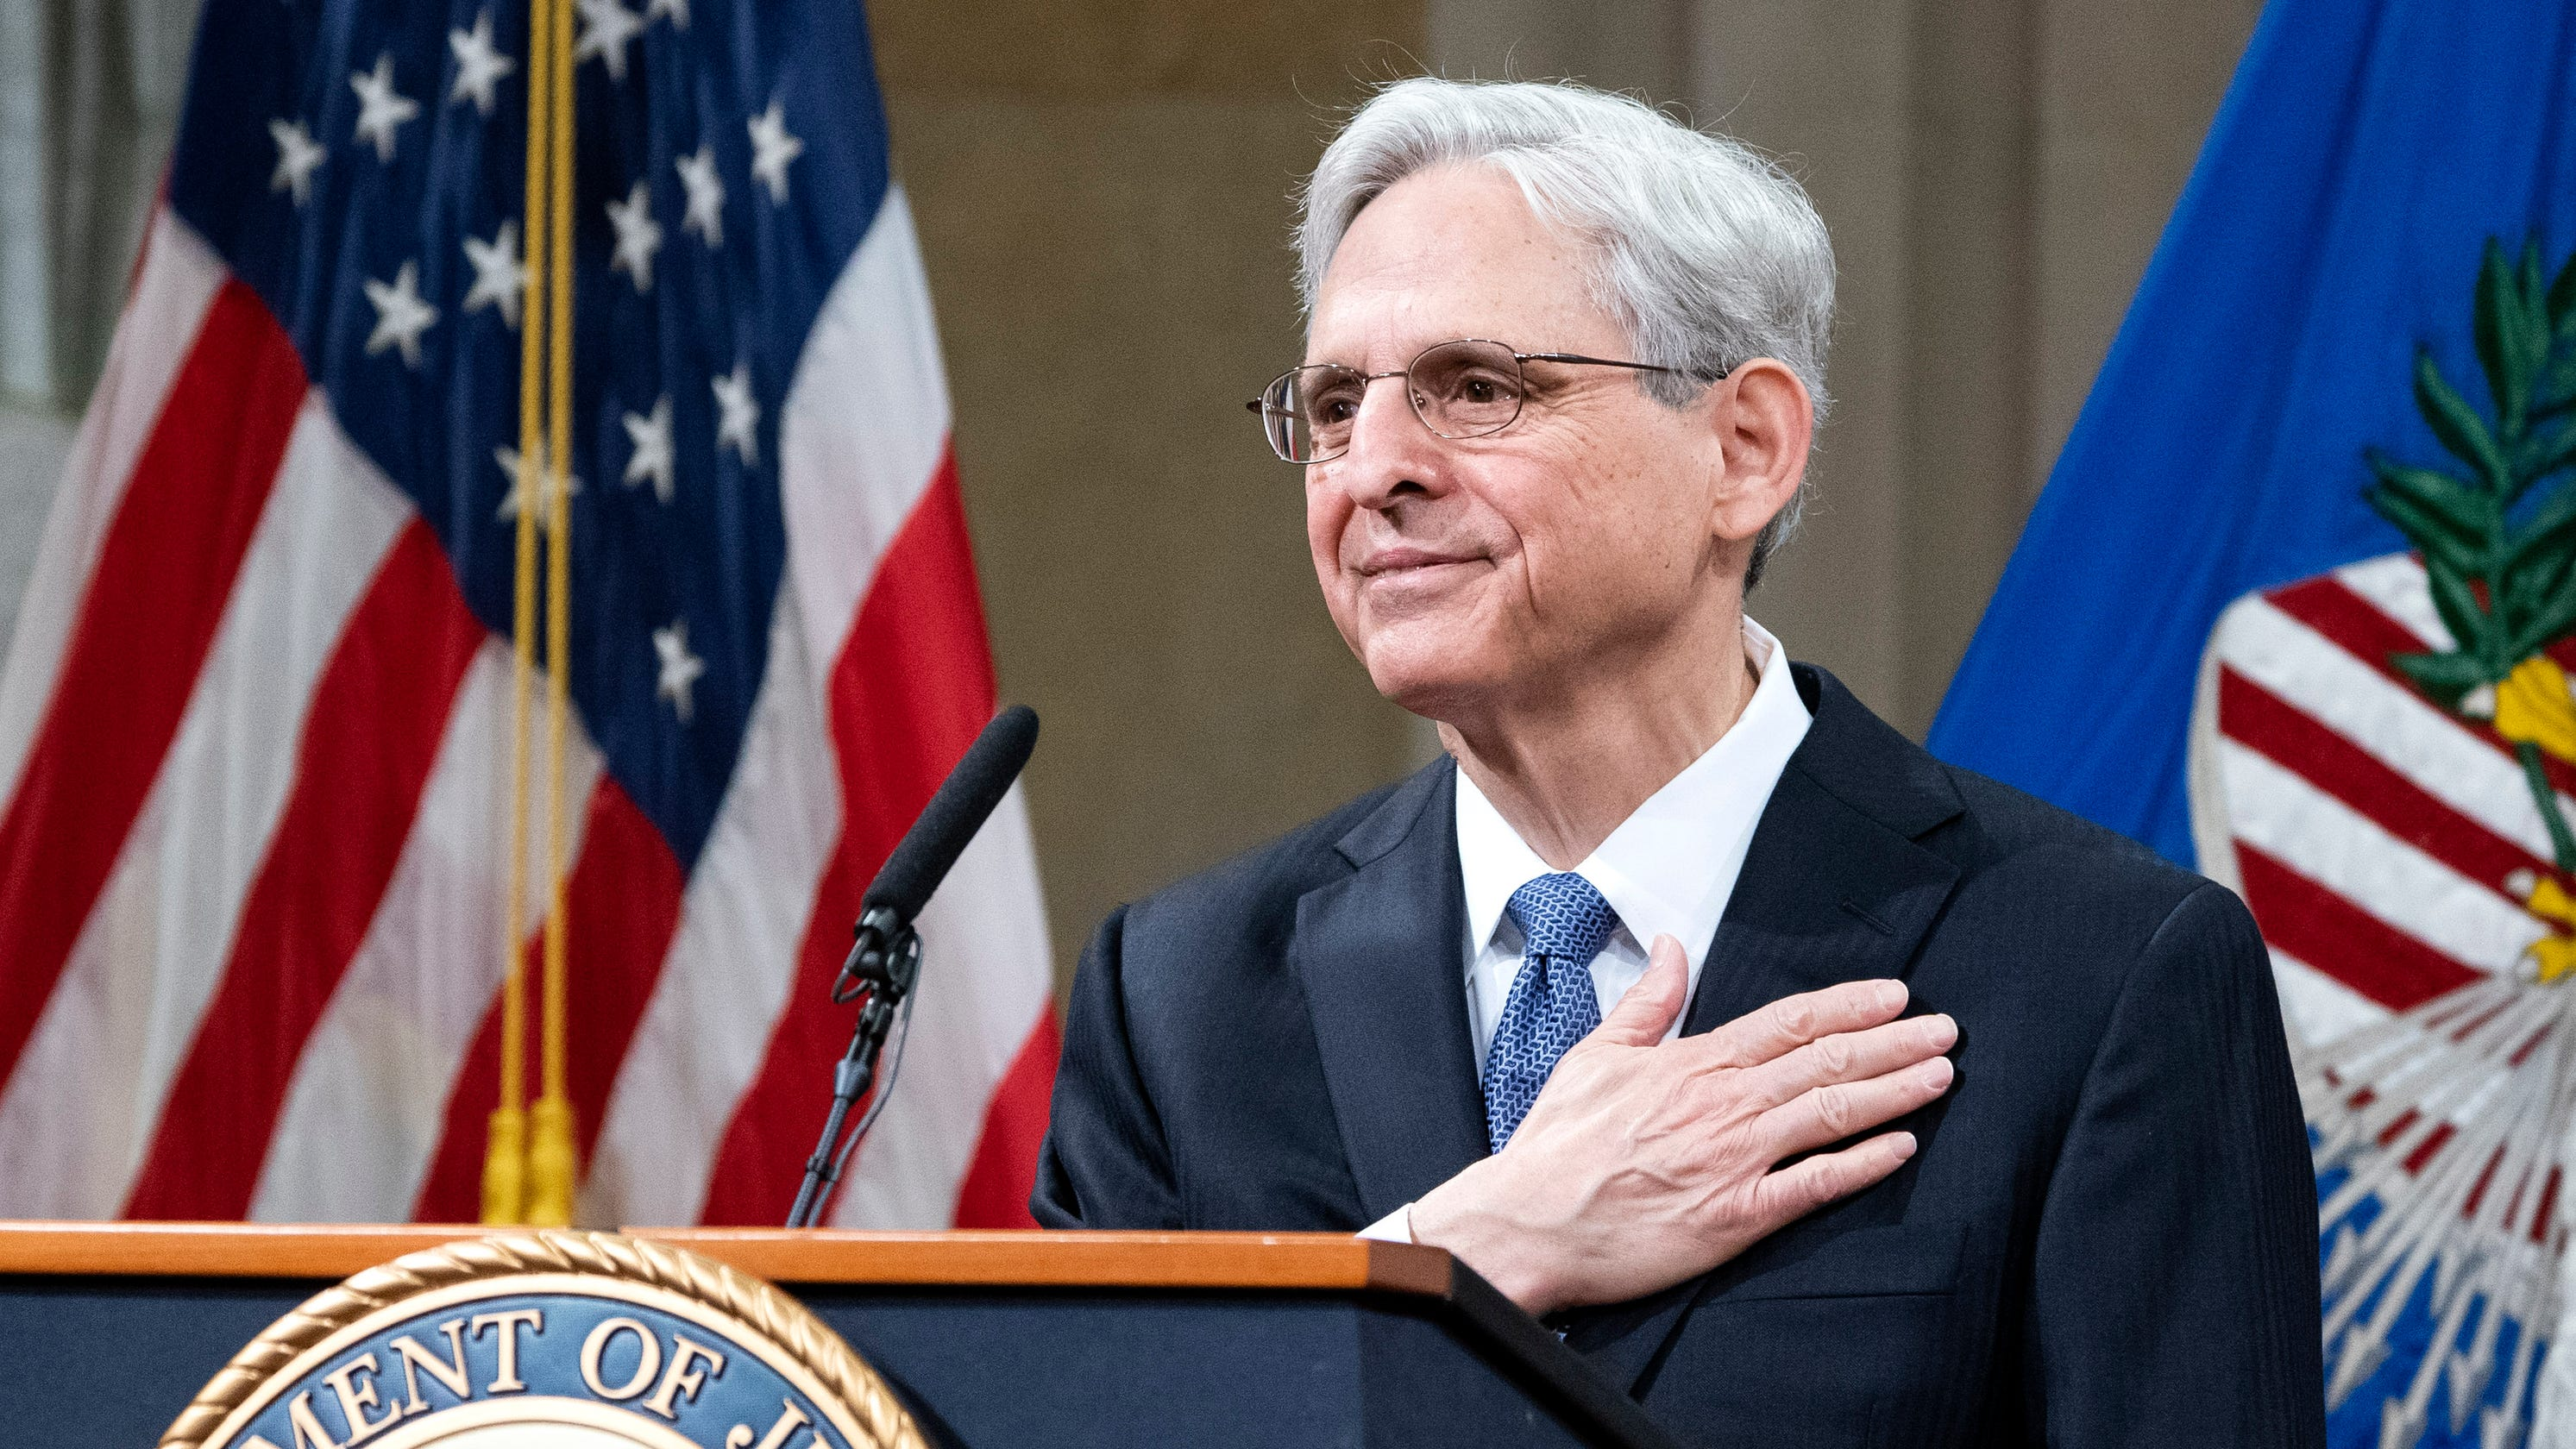 AG Merrick Garland vows to protect voting rights, beef up DOJ civil rights division